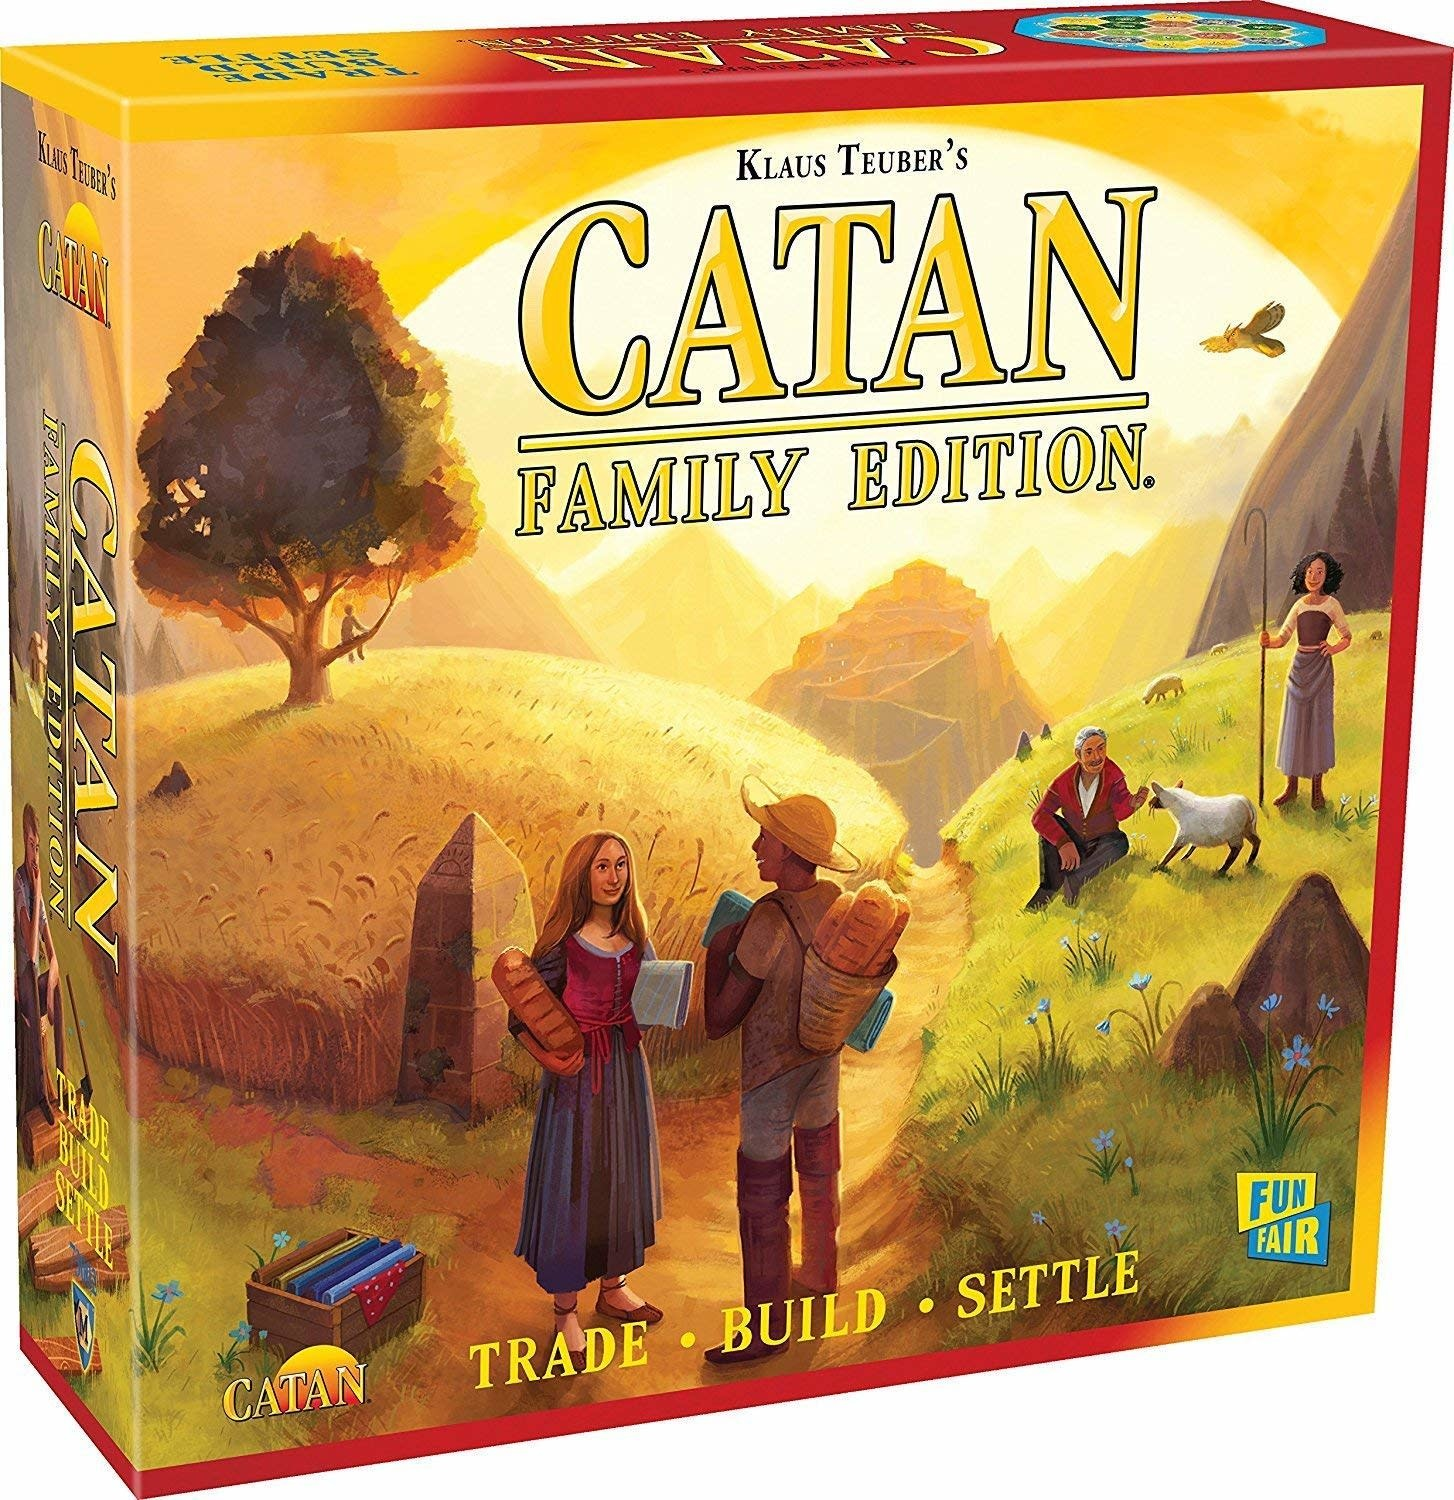 Lion Catan: Family Edition